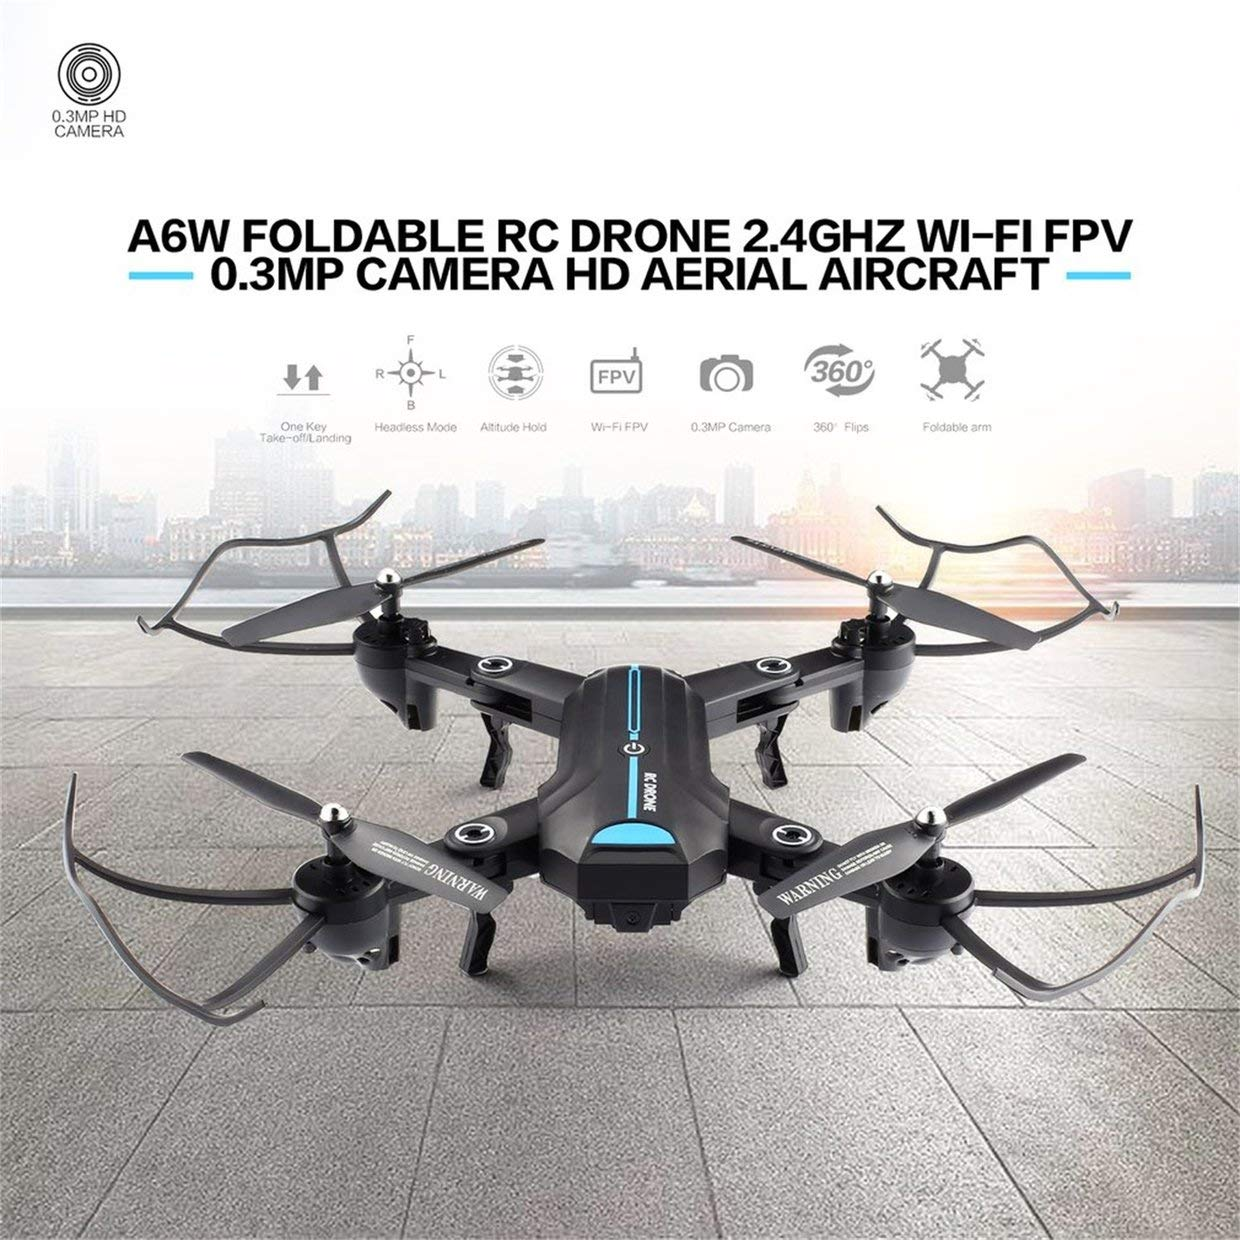 Qewmsg A6W Plegable RC Drone Wi-Fi FPV con cámara de Video en Vivo Altitude Hold Quadcopter: Amazon.es: Juguetes y juegos